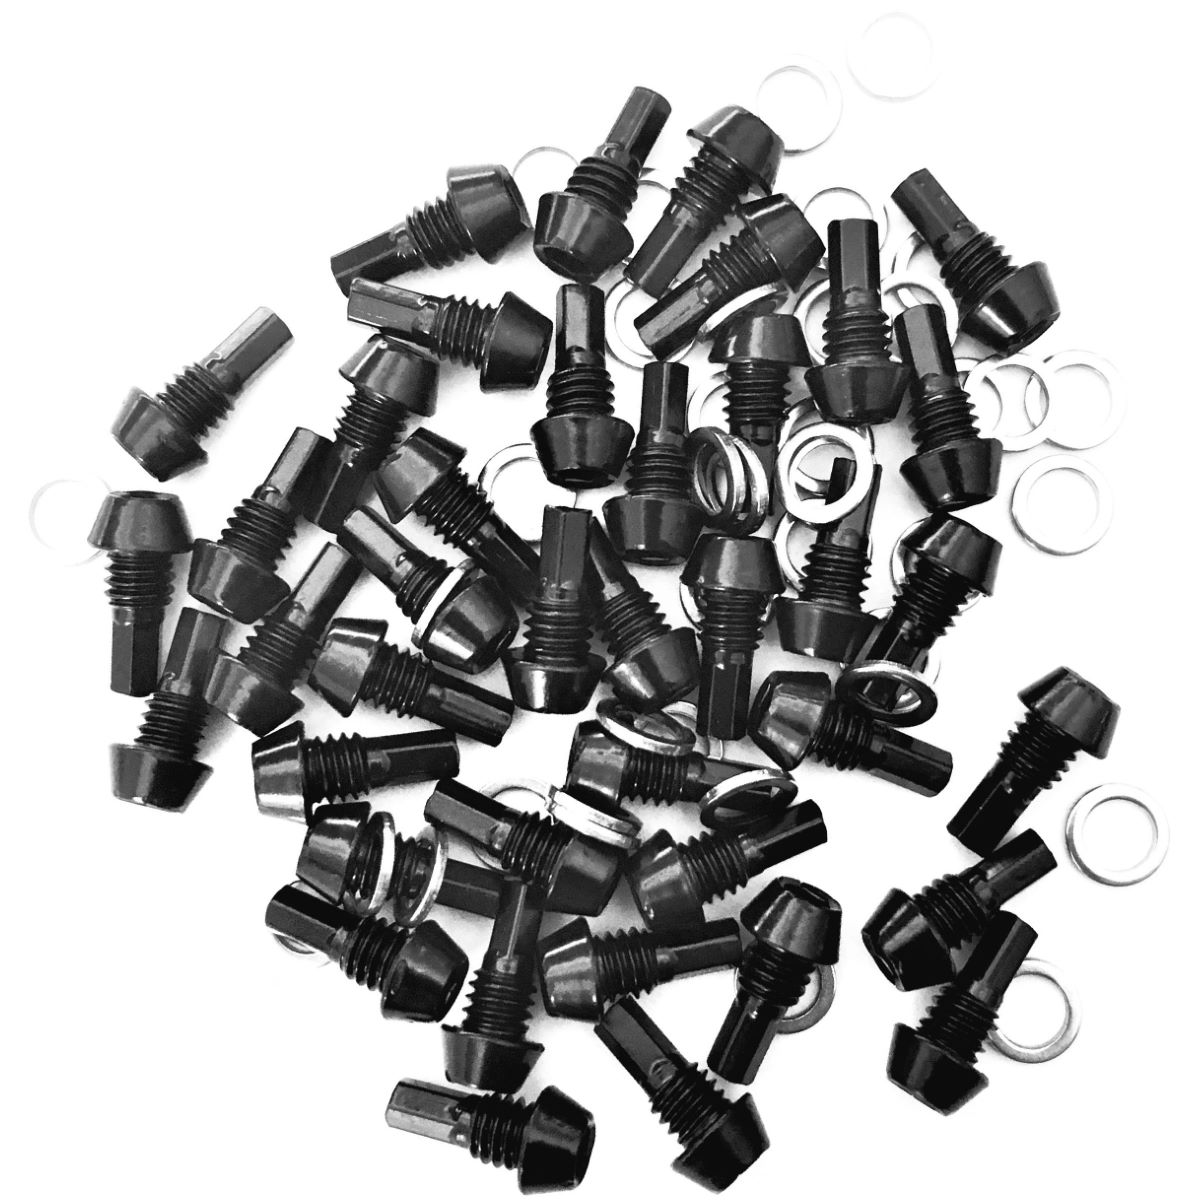 OneUp Components OneUp Components Aluminium Pedal Pin and Washer Kit   Pedal Spares